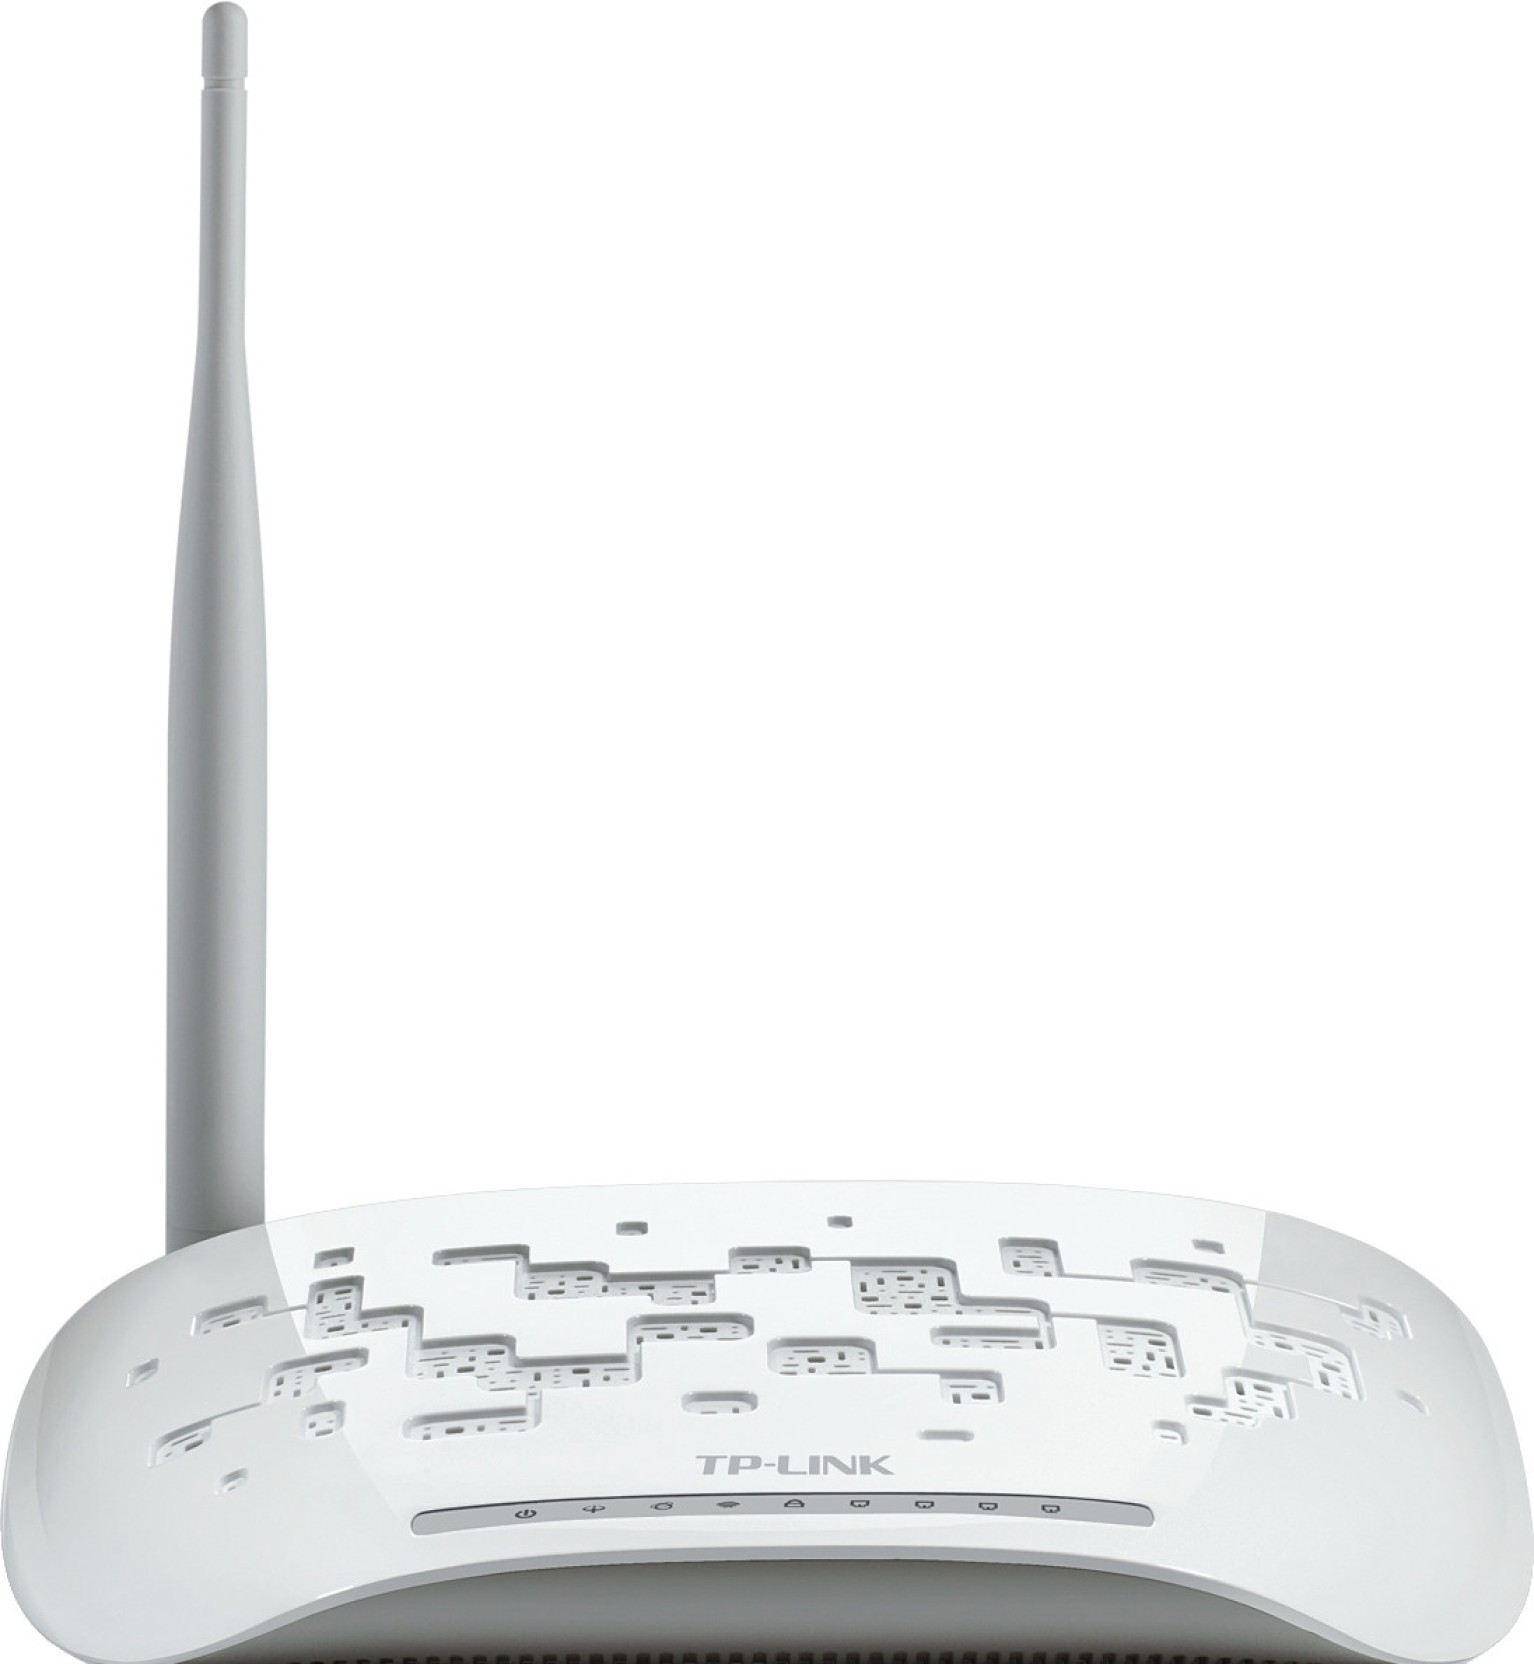 how to turn off wps on tp link router